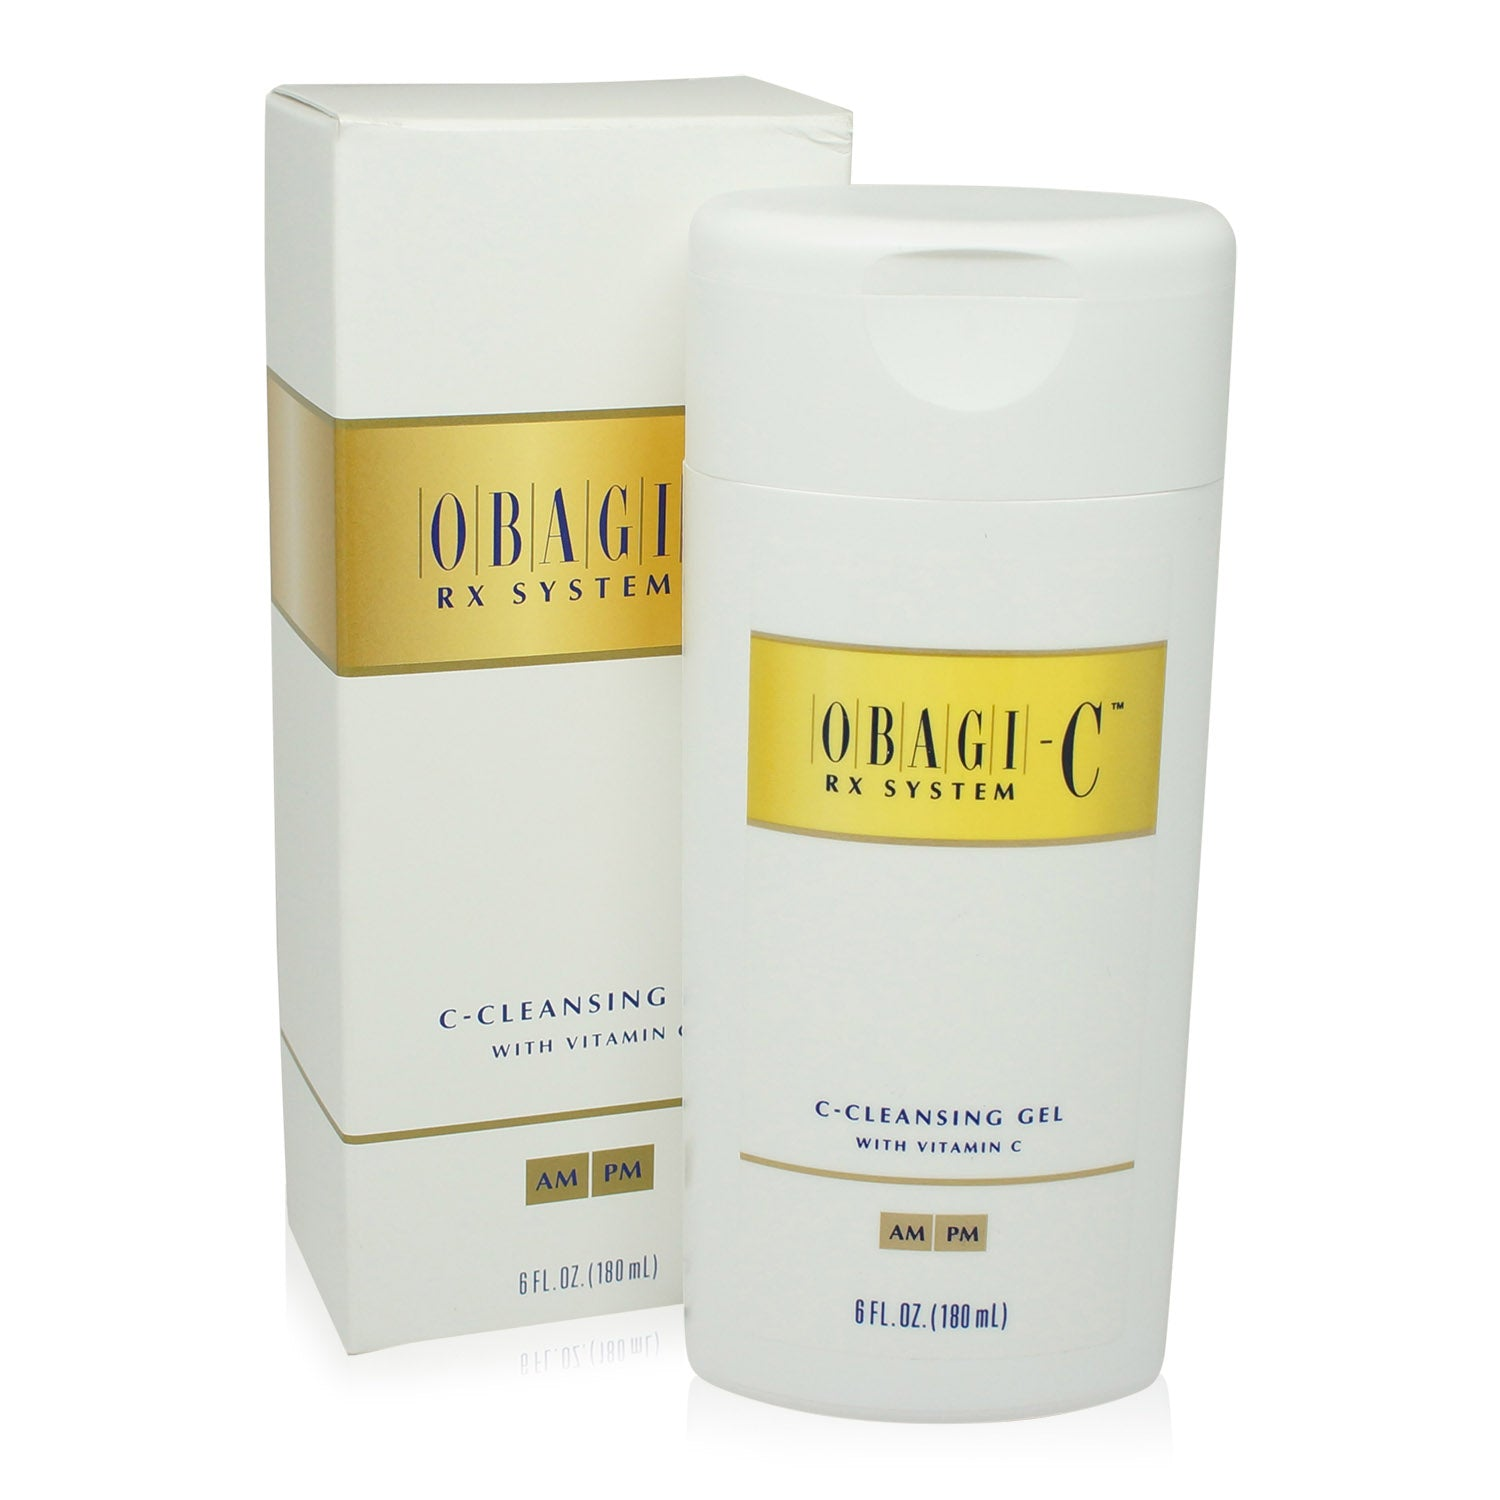 OBAGI ~ OBAGI-C ~ C-CLEANSING GEL 6.0 OZ